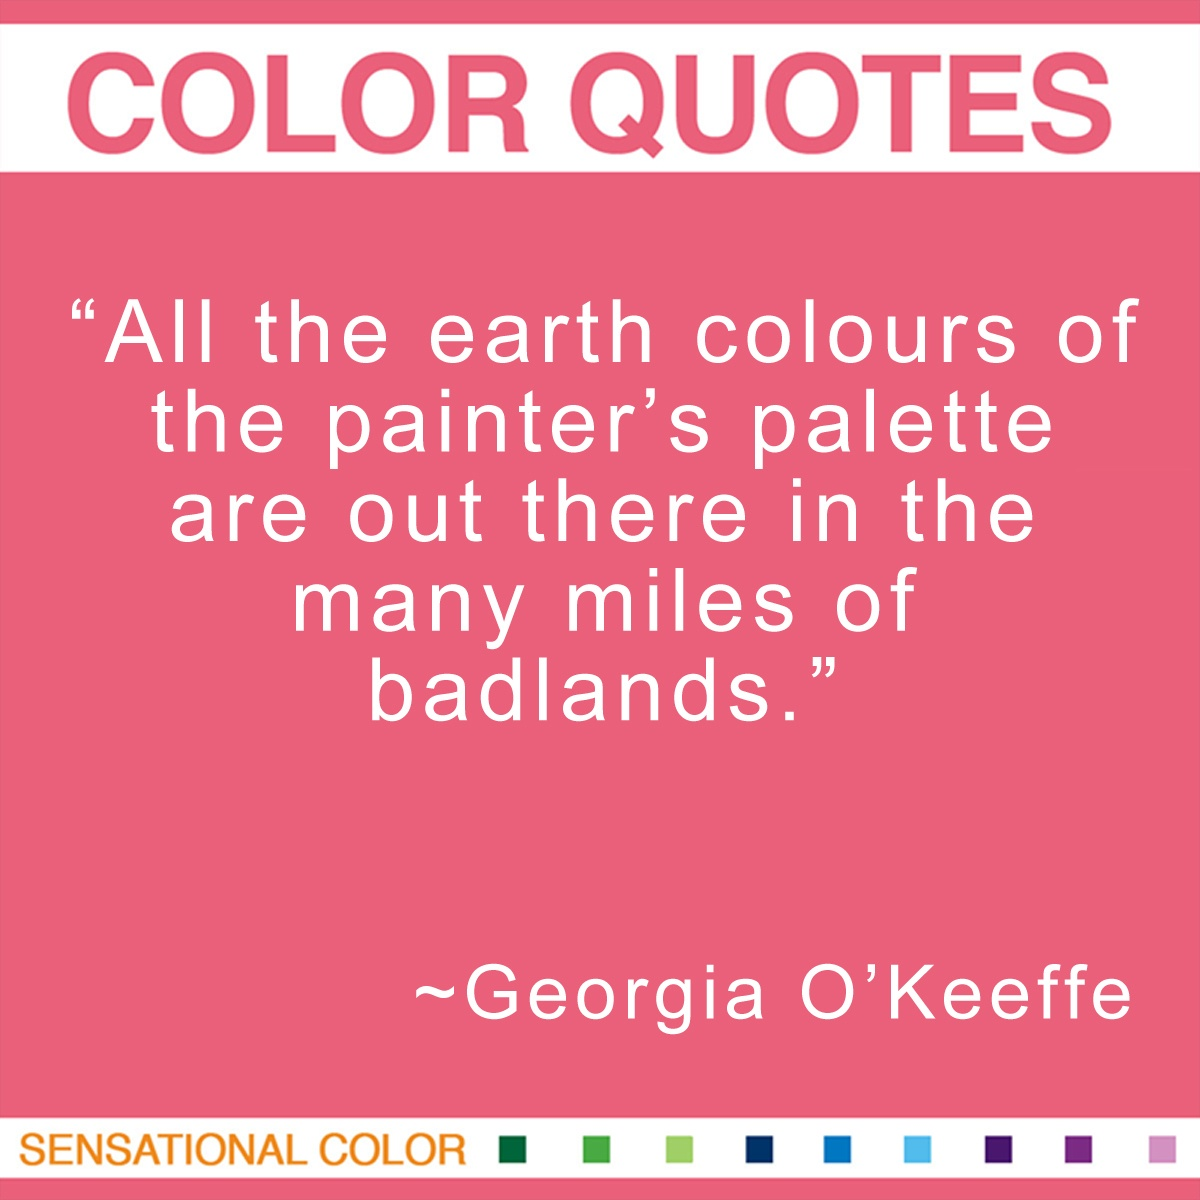 """All the earth colours of the painter's palette are out there in the many miles of badlands."" - Georgia O'Keeffe"